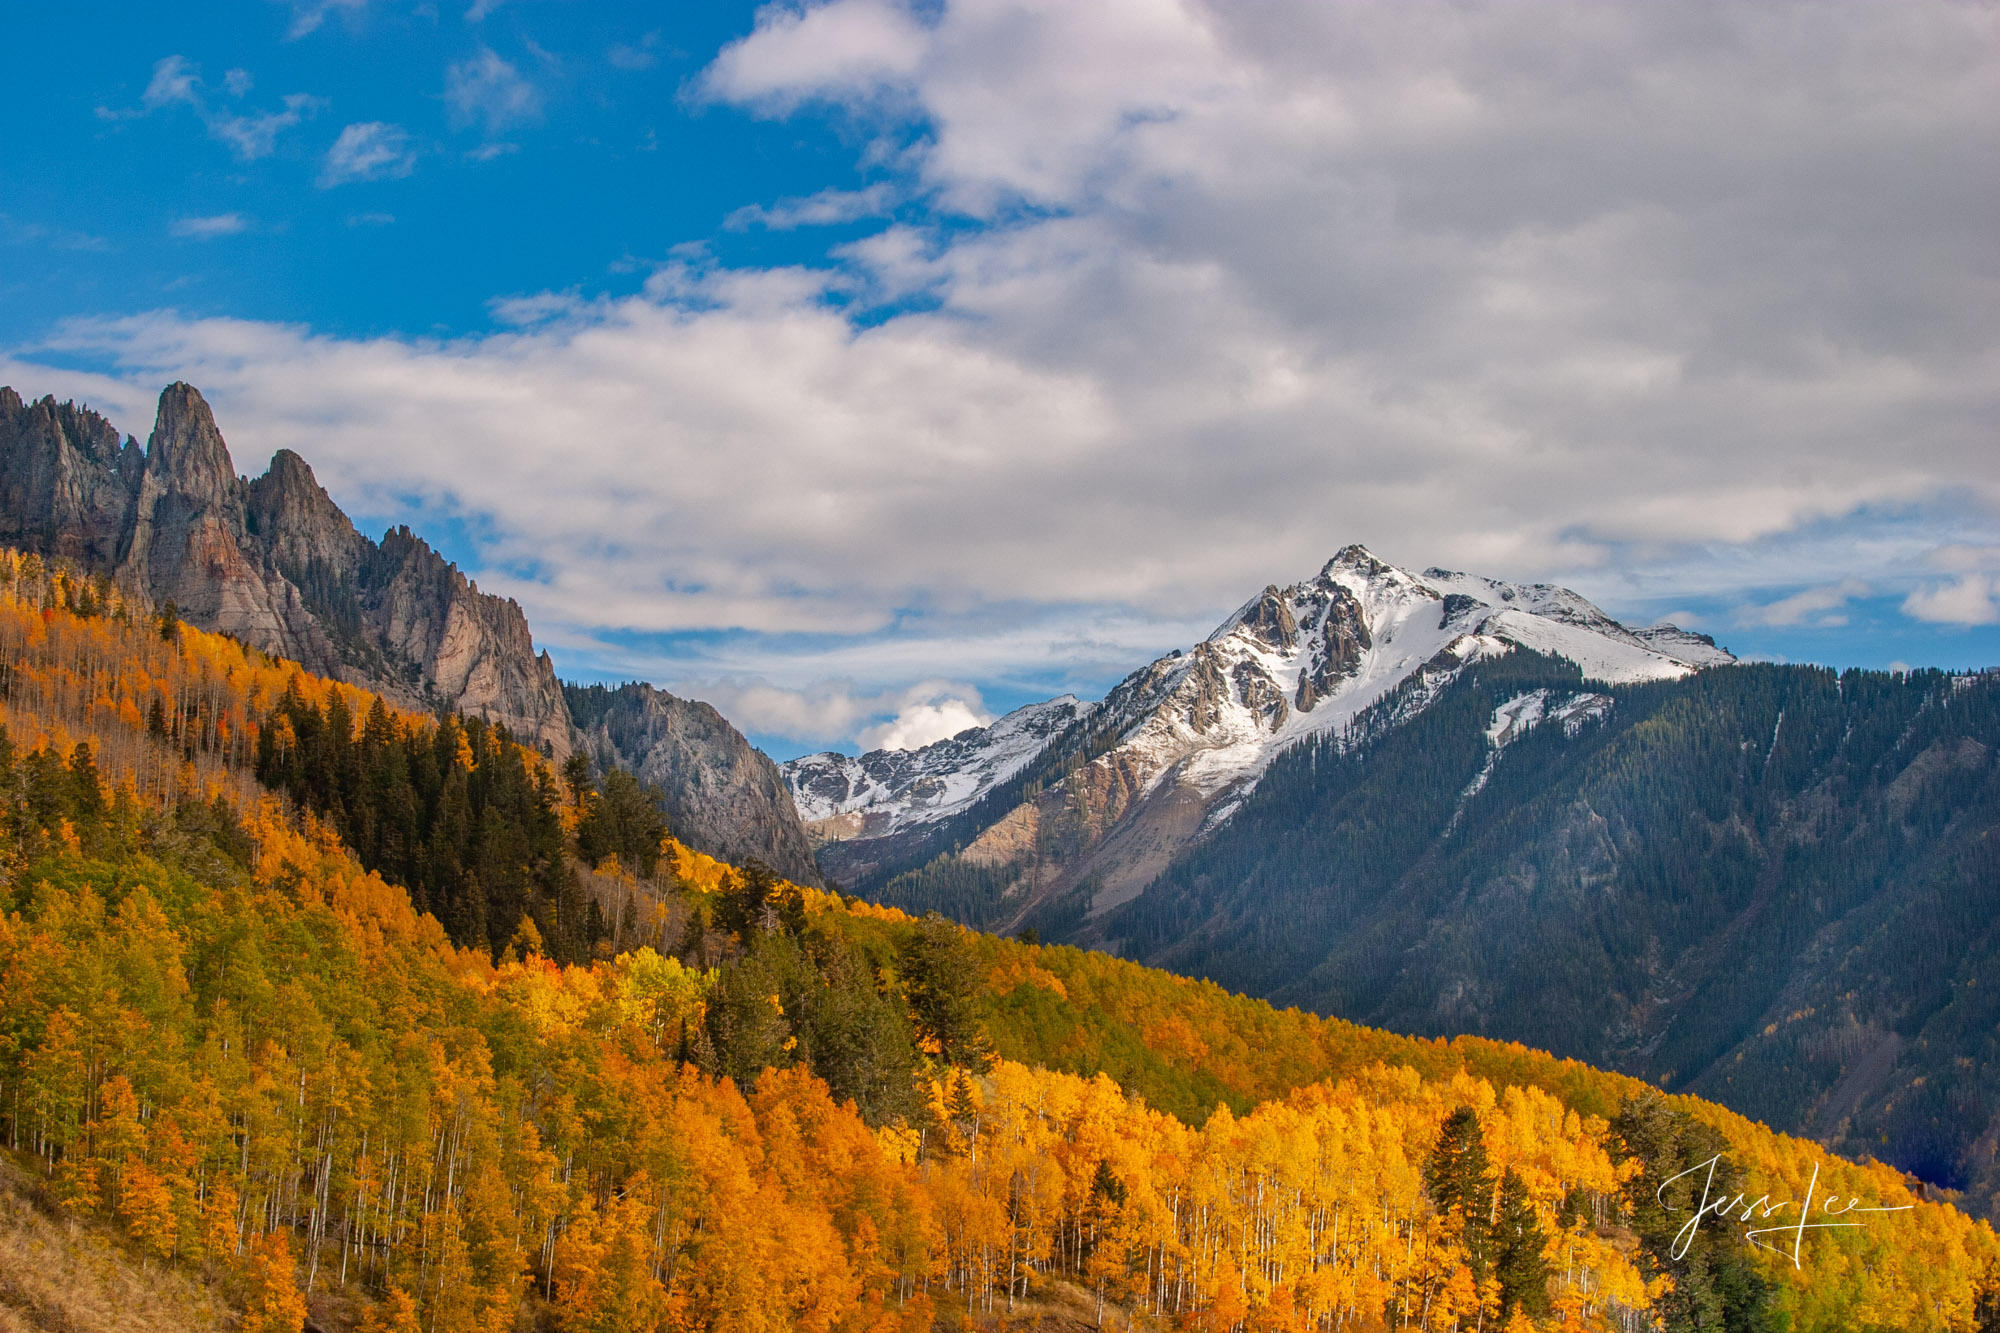 Fine Art Limited Edition Photography of Colorado. Colorado Autumn Landscapes.This is part of the luxurious collection of fine...